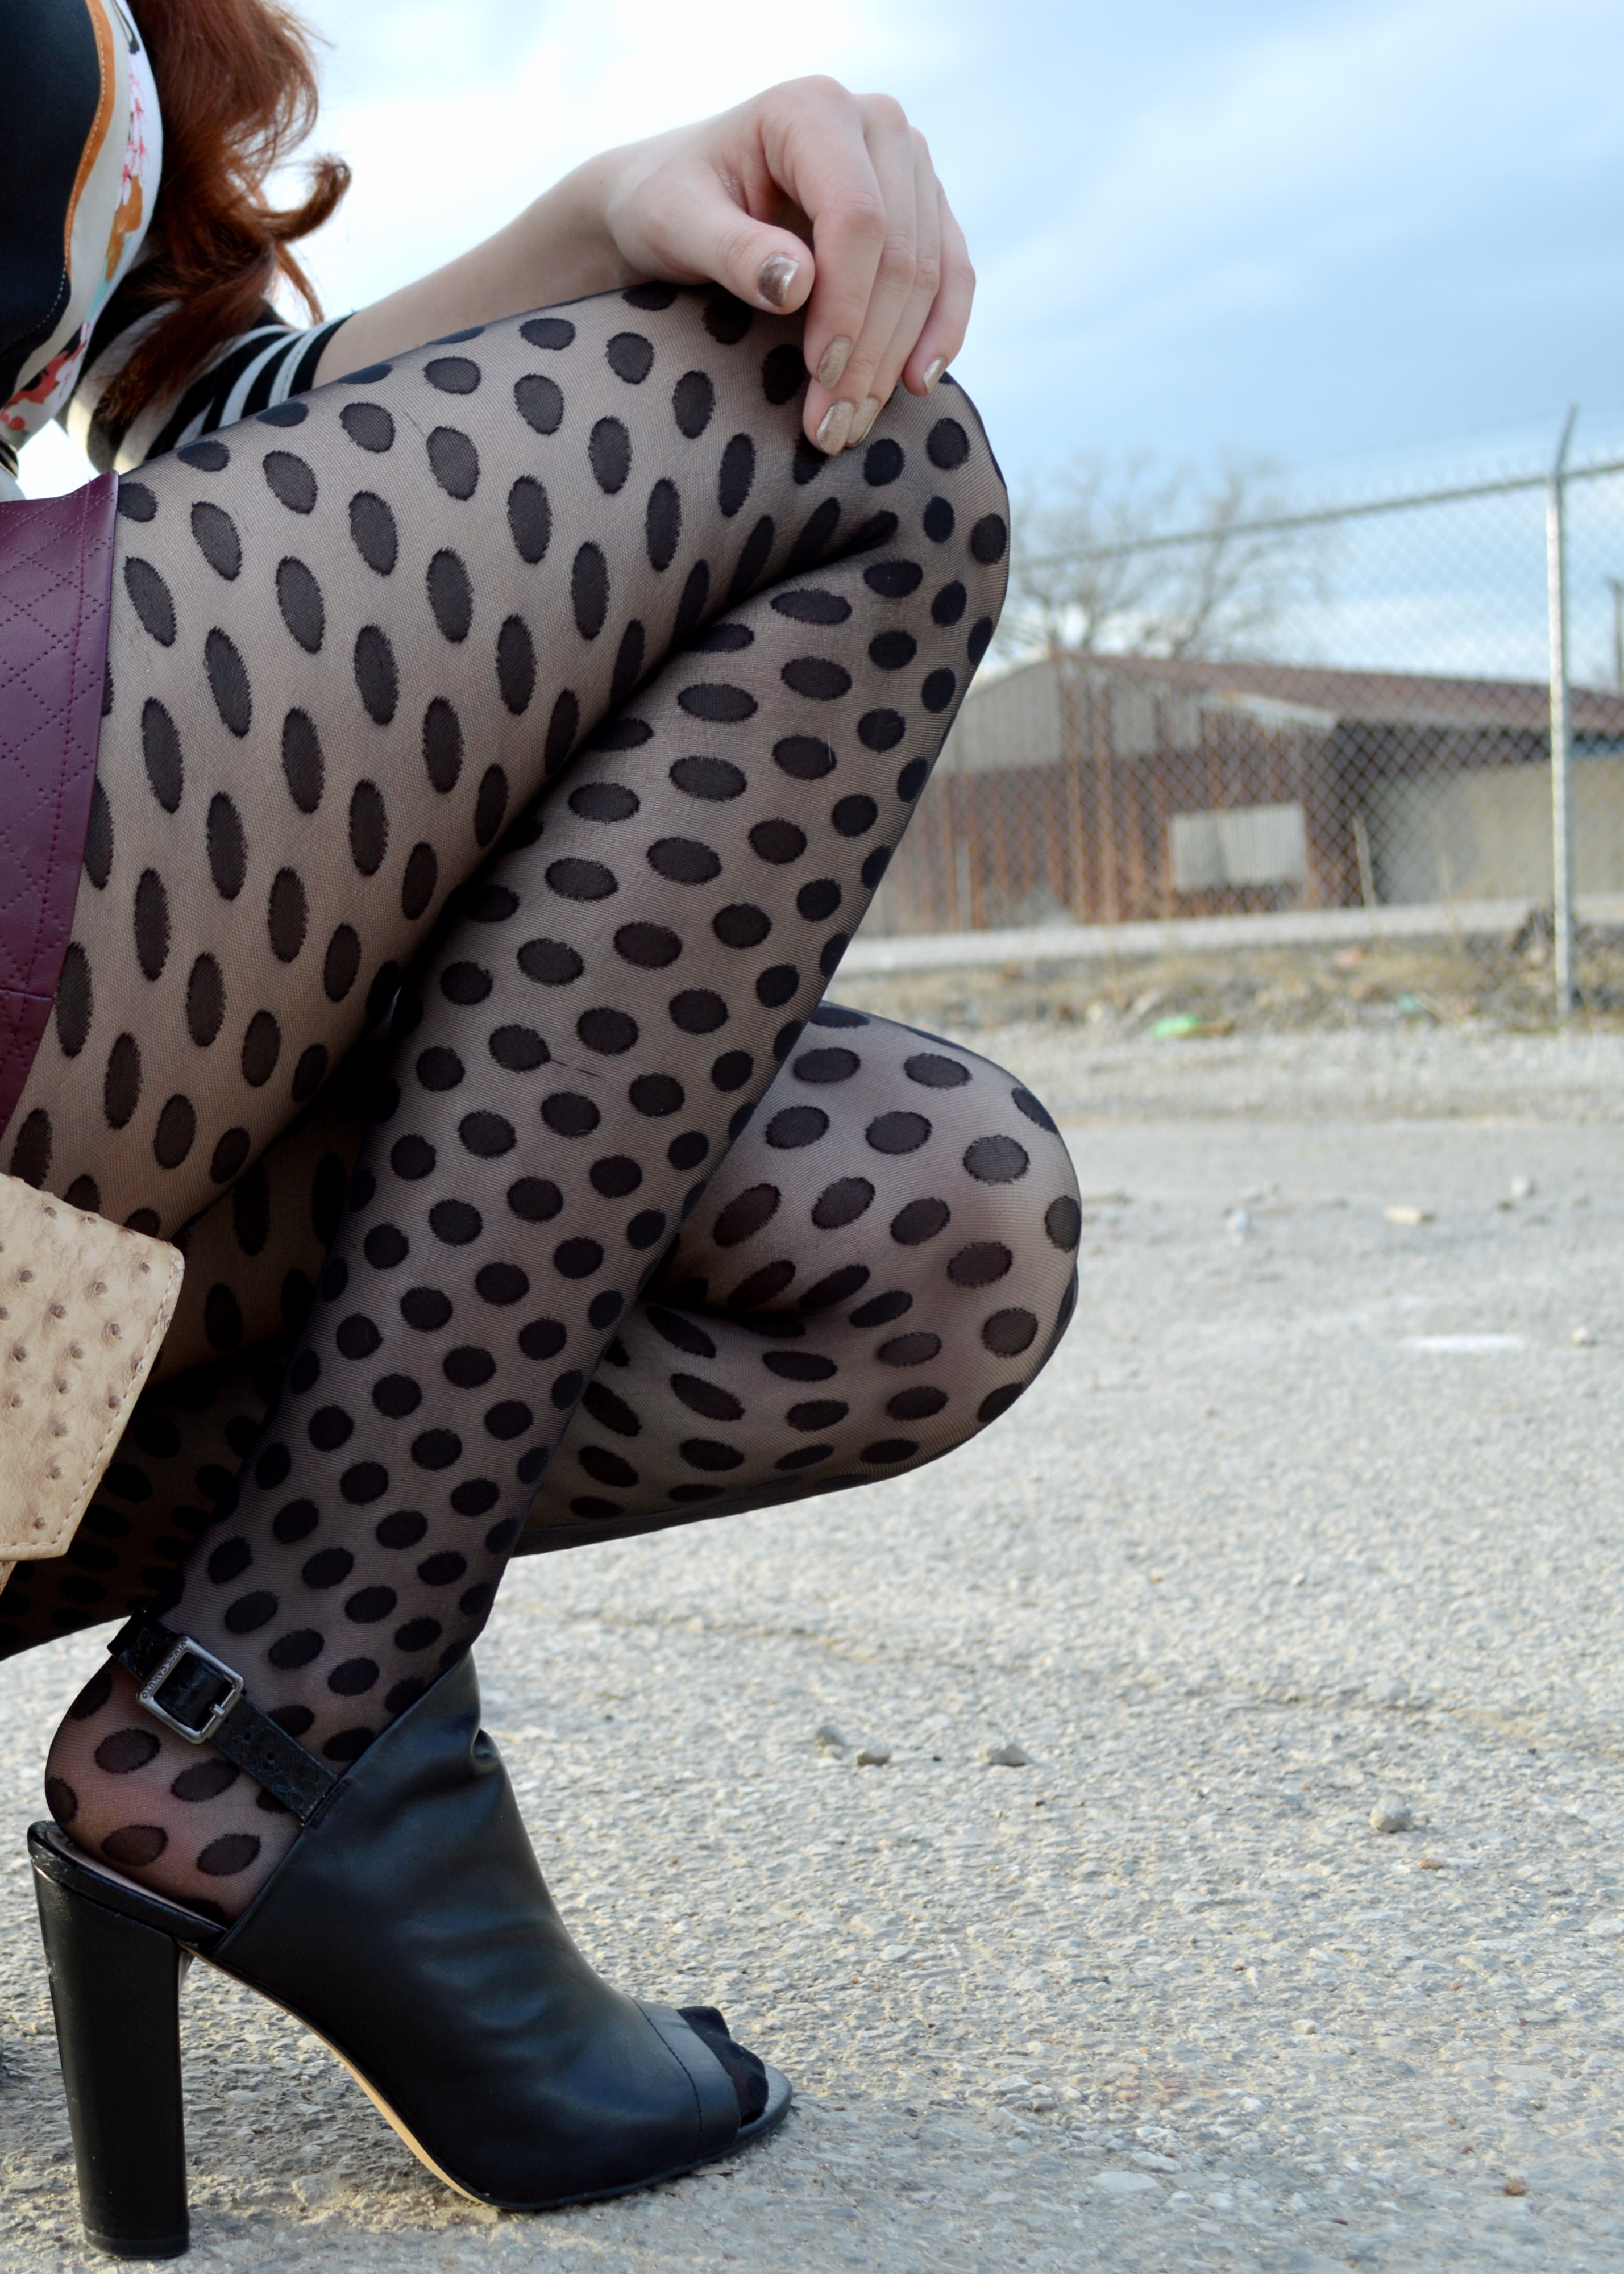 tights with sandals or open toe shoes stylizedu